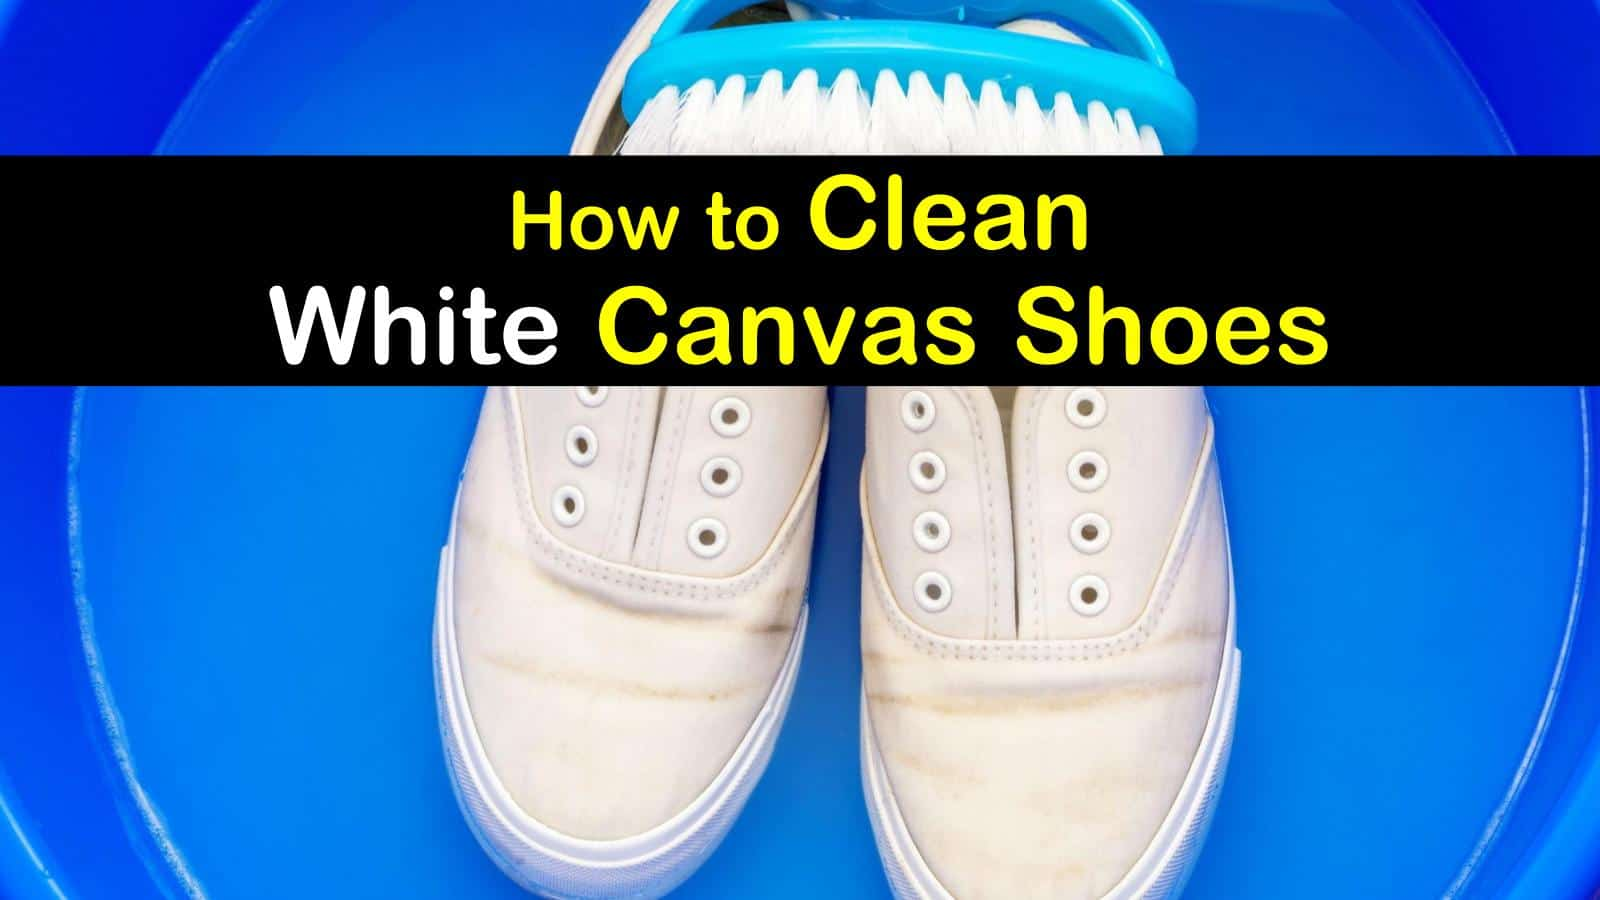 how to clean white canvas shoes titleimg1